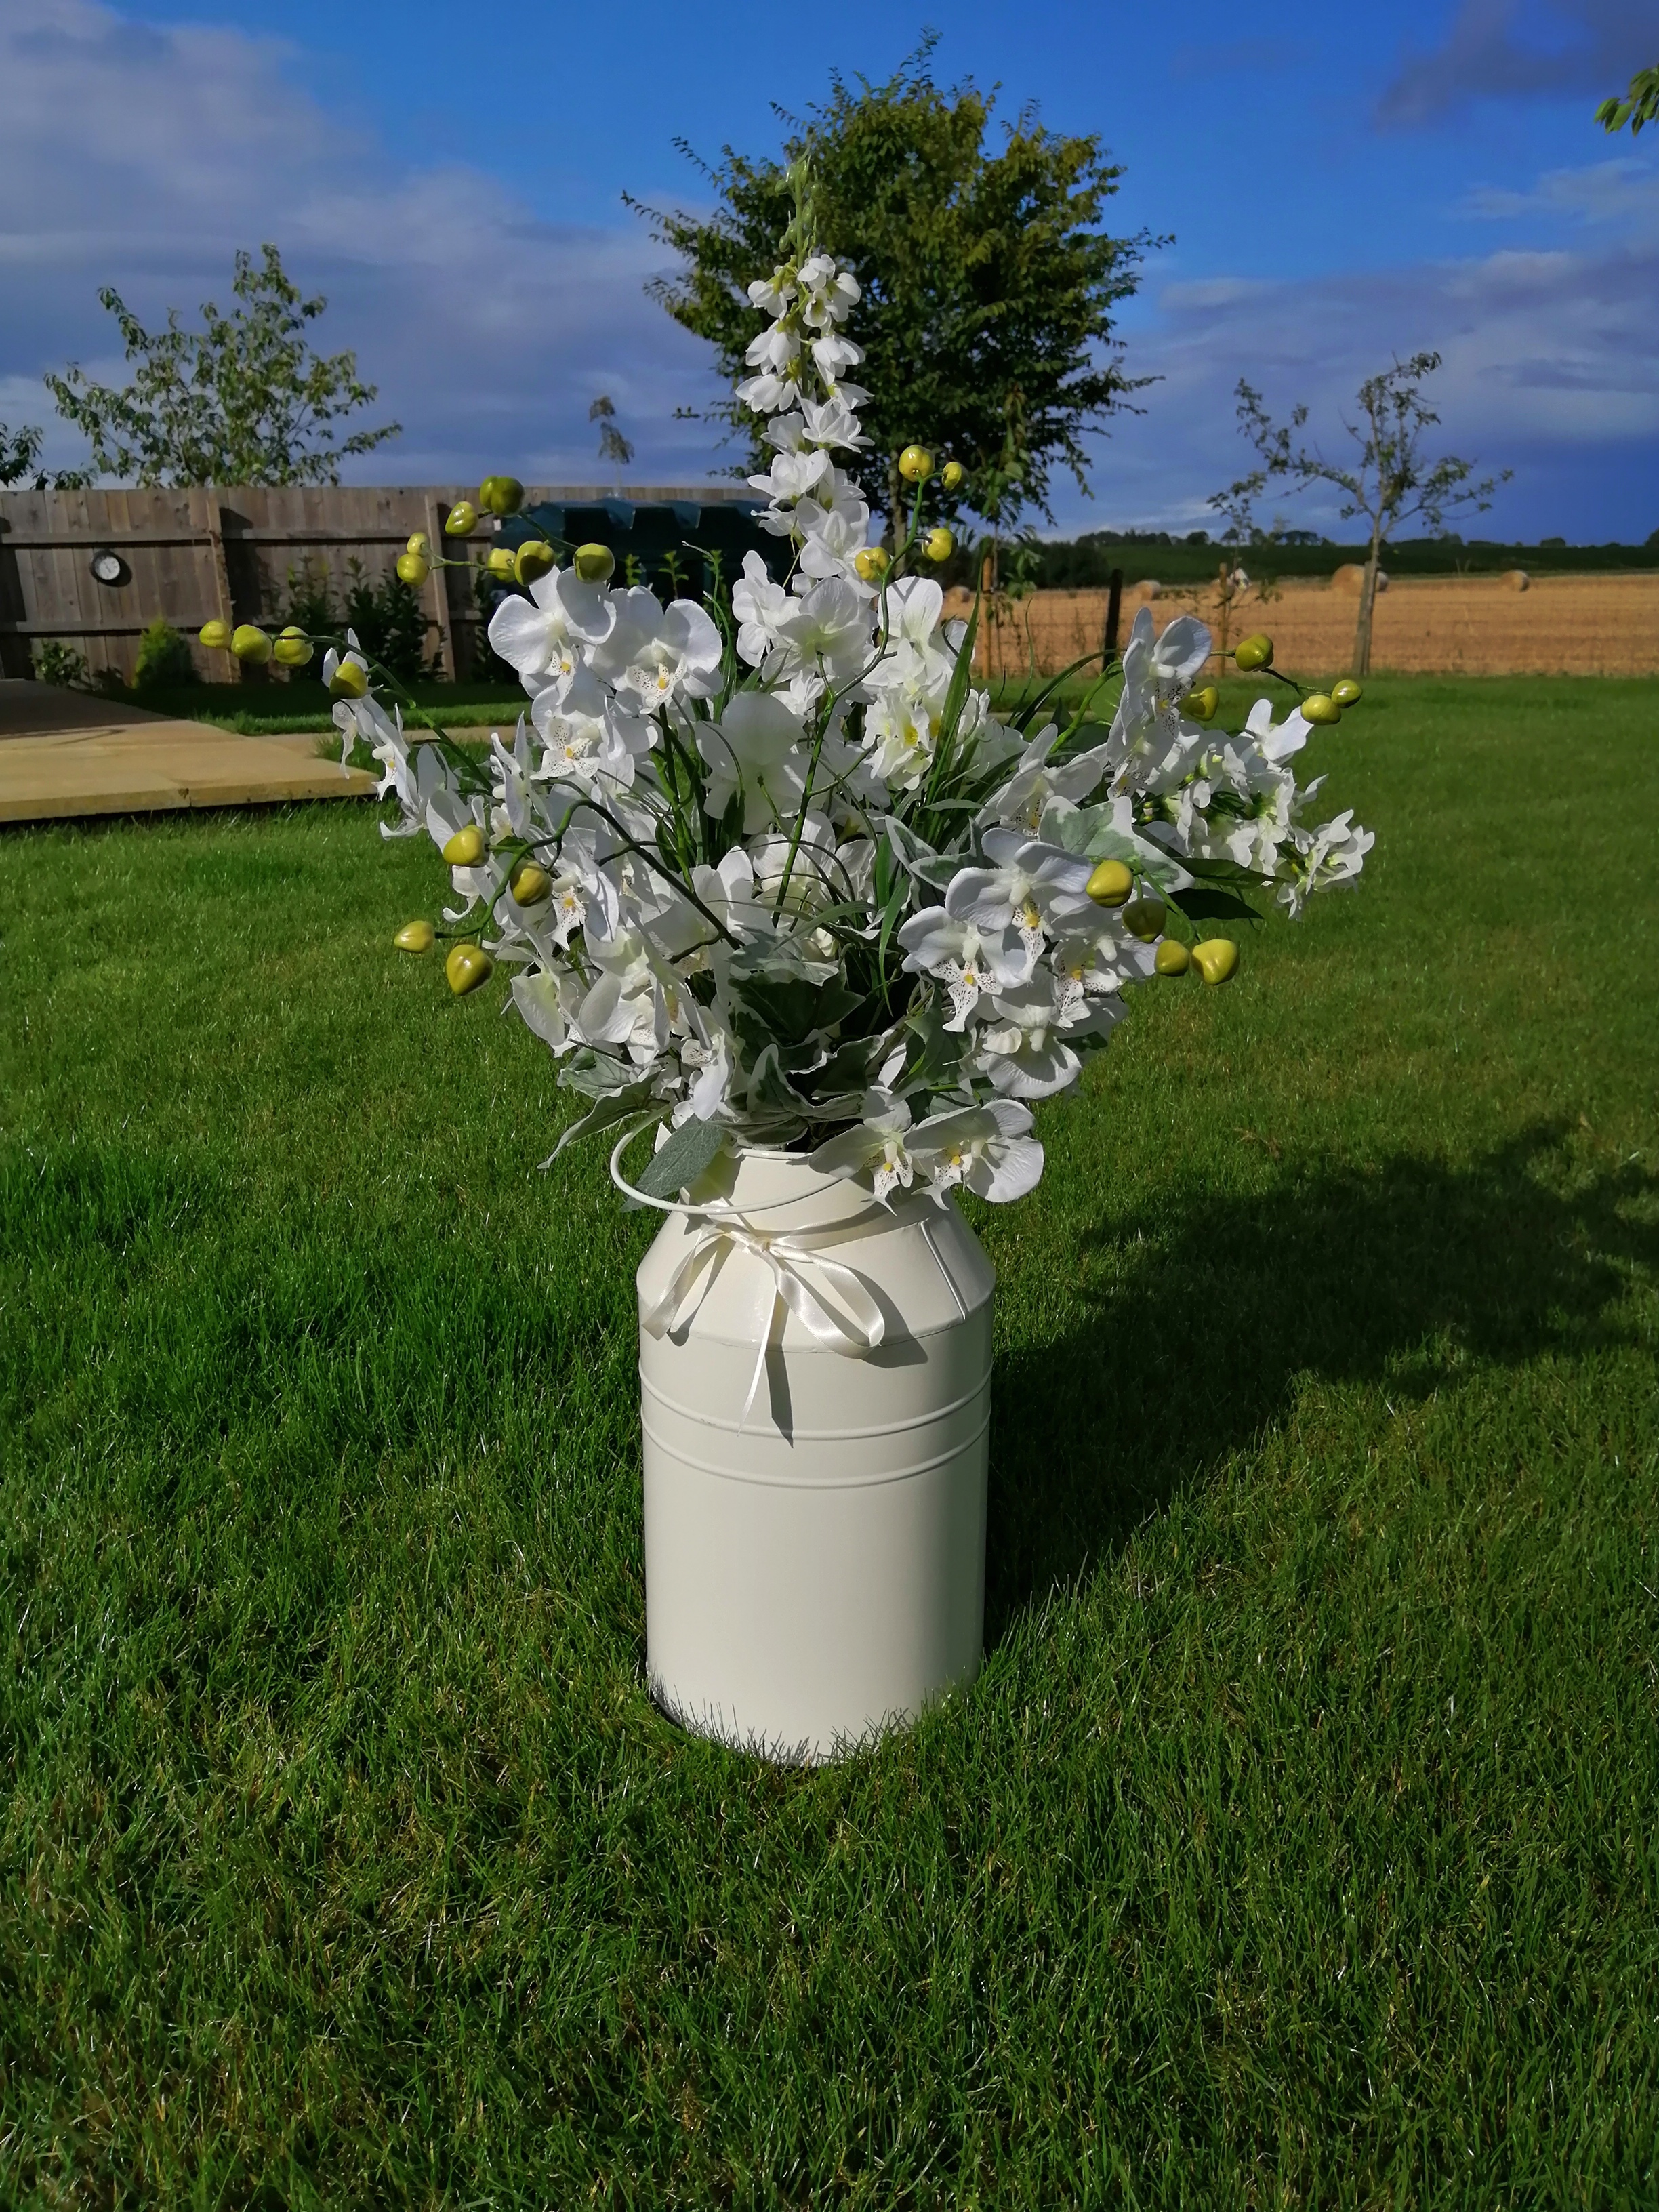 Milk Churn with flowers and foliage